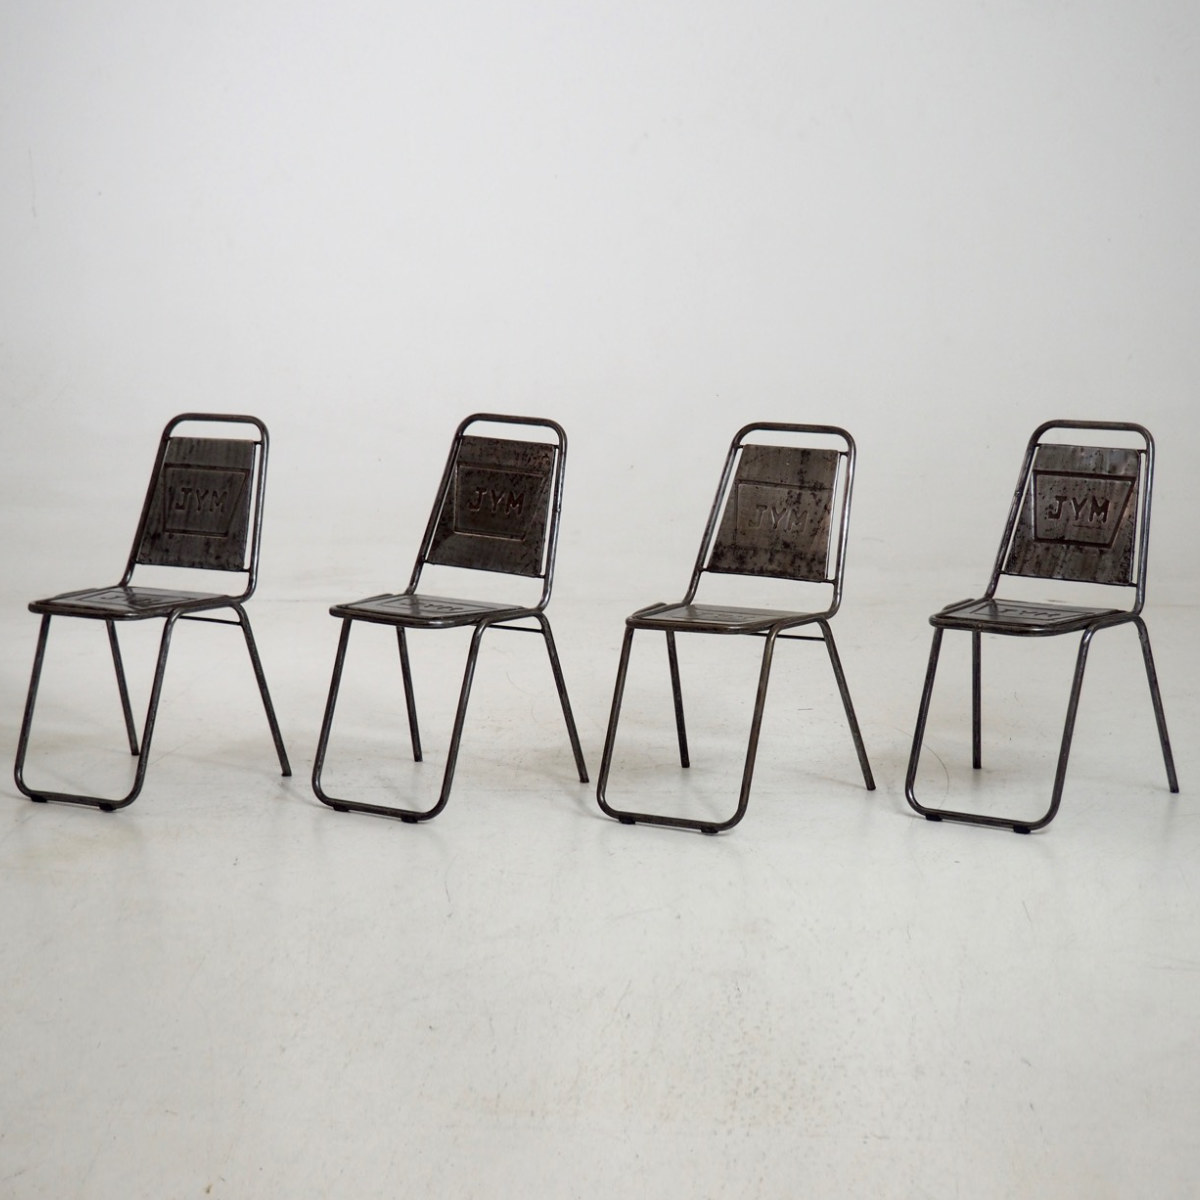 Four French cafe chairs, 20th C. - € 900